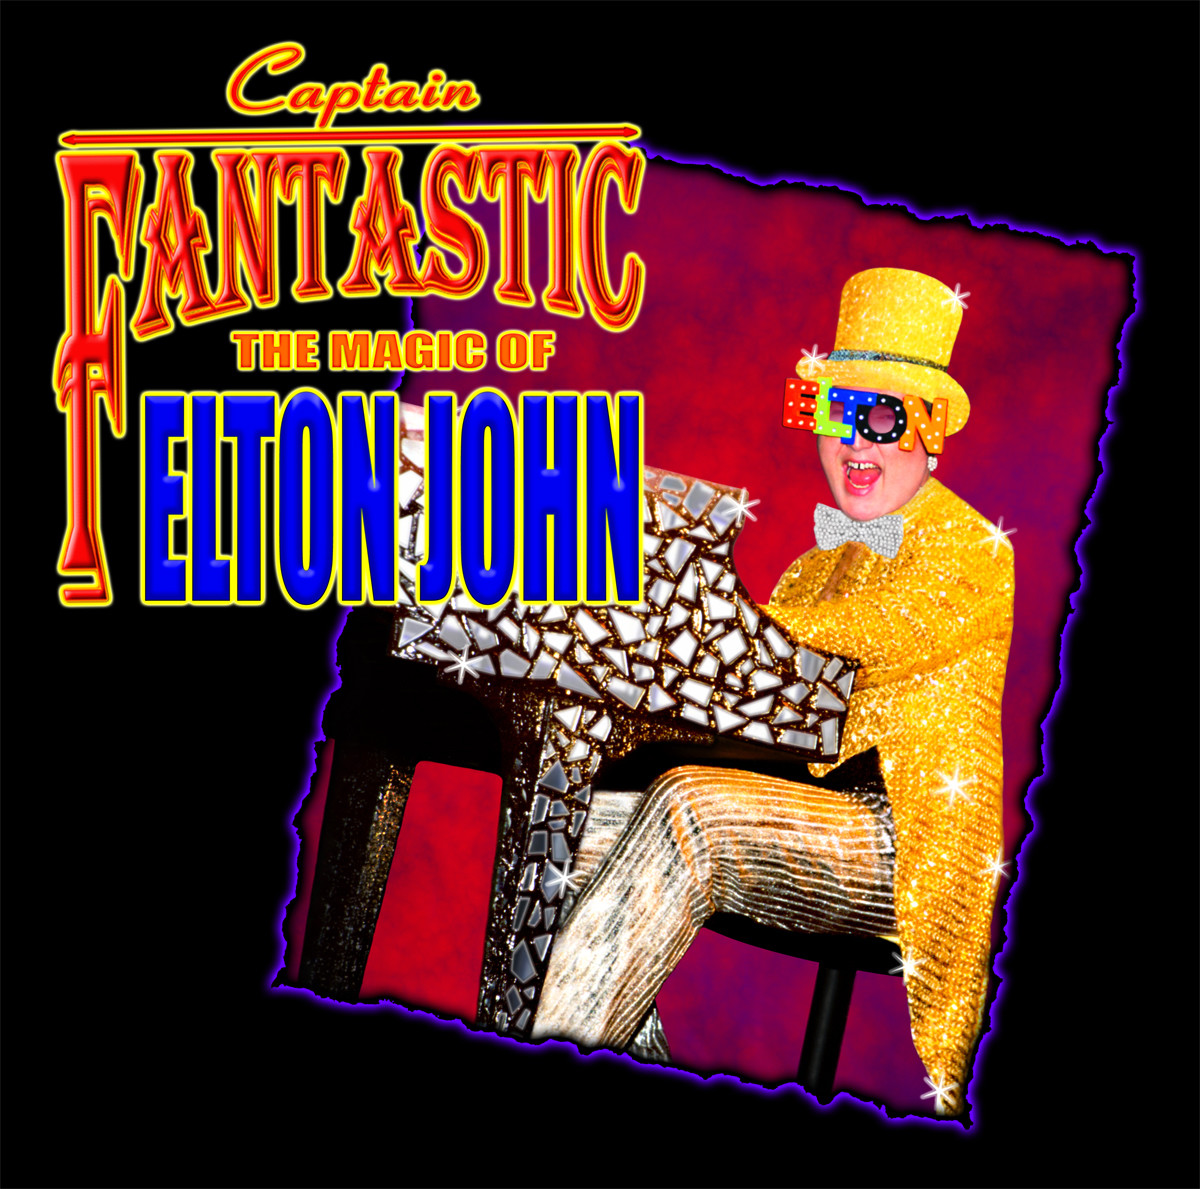 Check out Captain Fantastic, an Elton John tribute band that will perform in Echo Park on Thursday, July 13